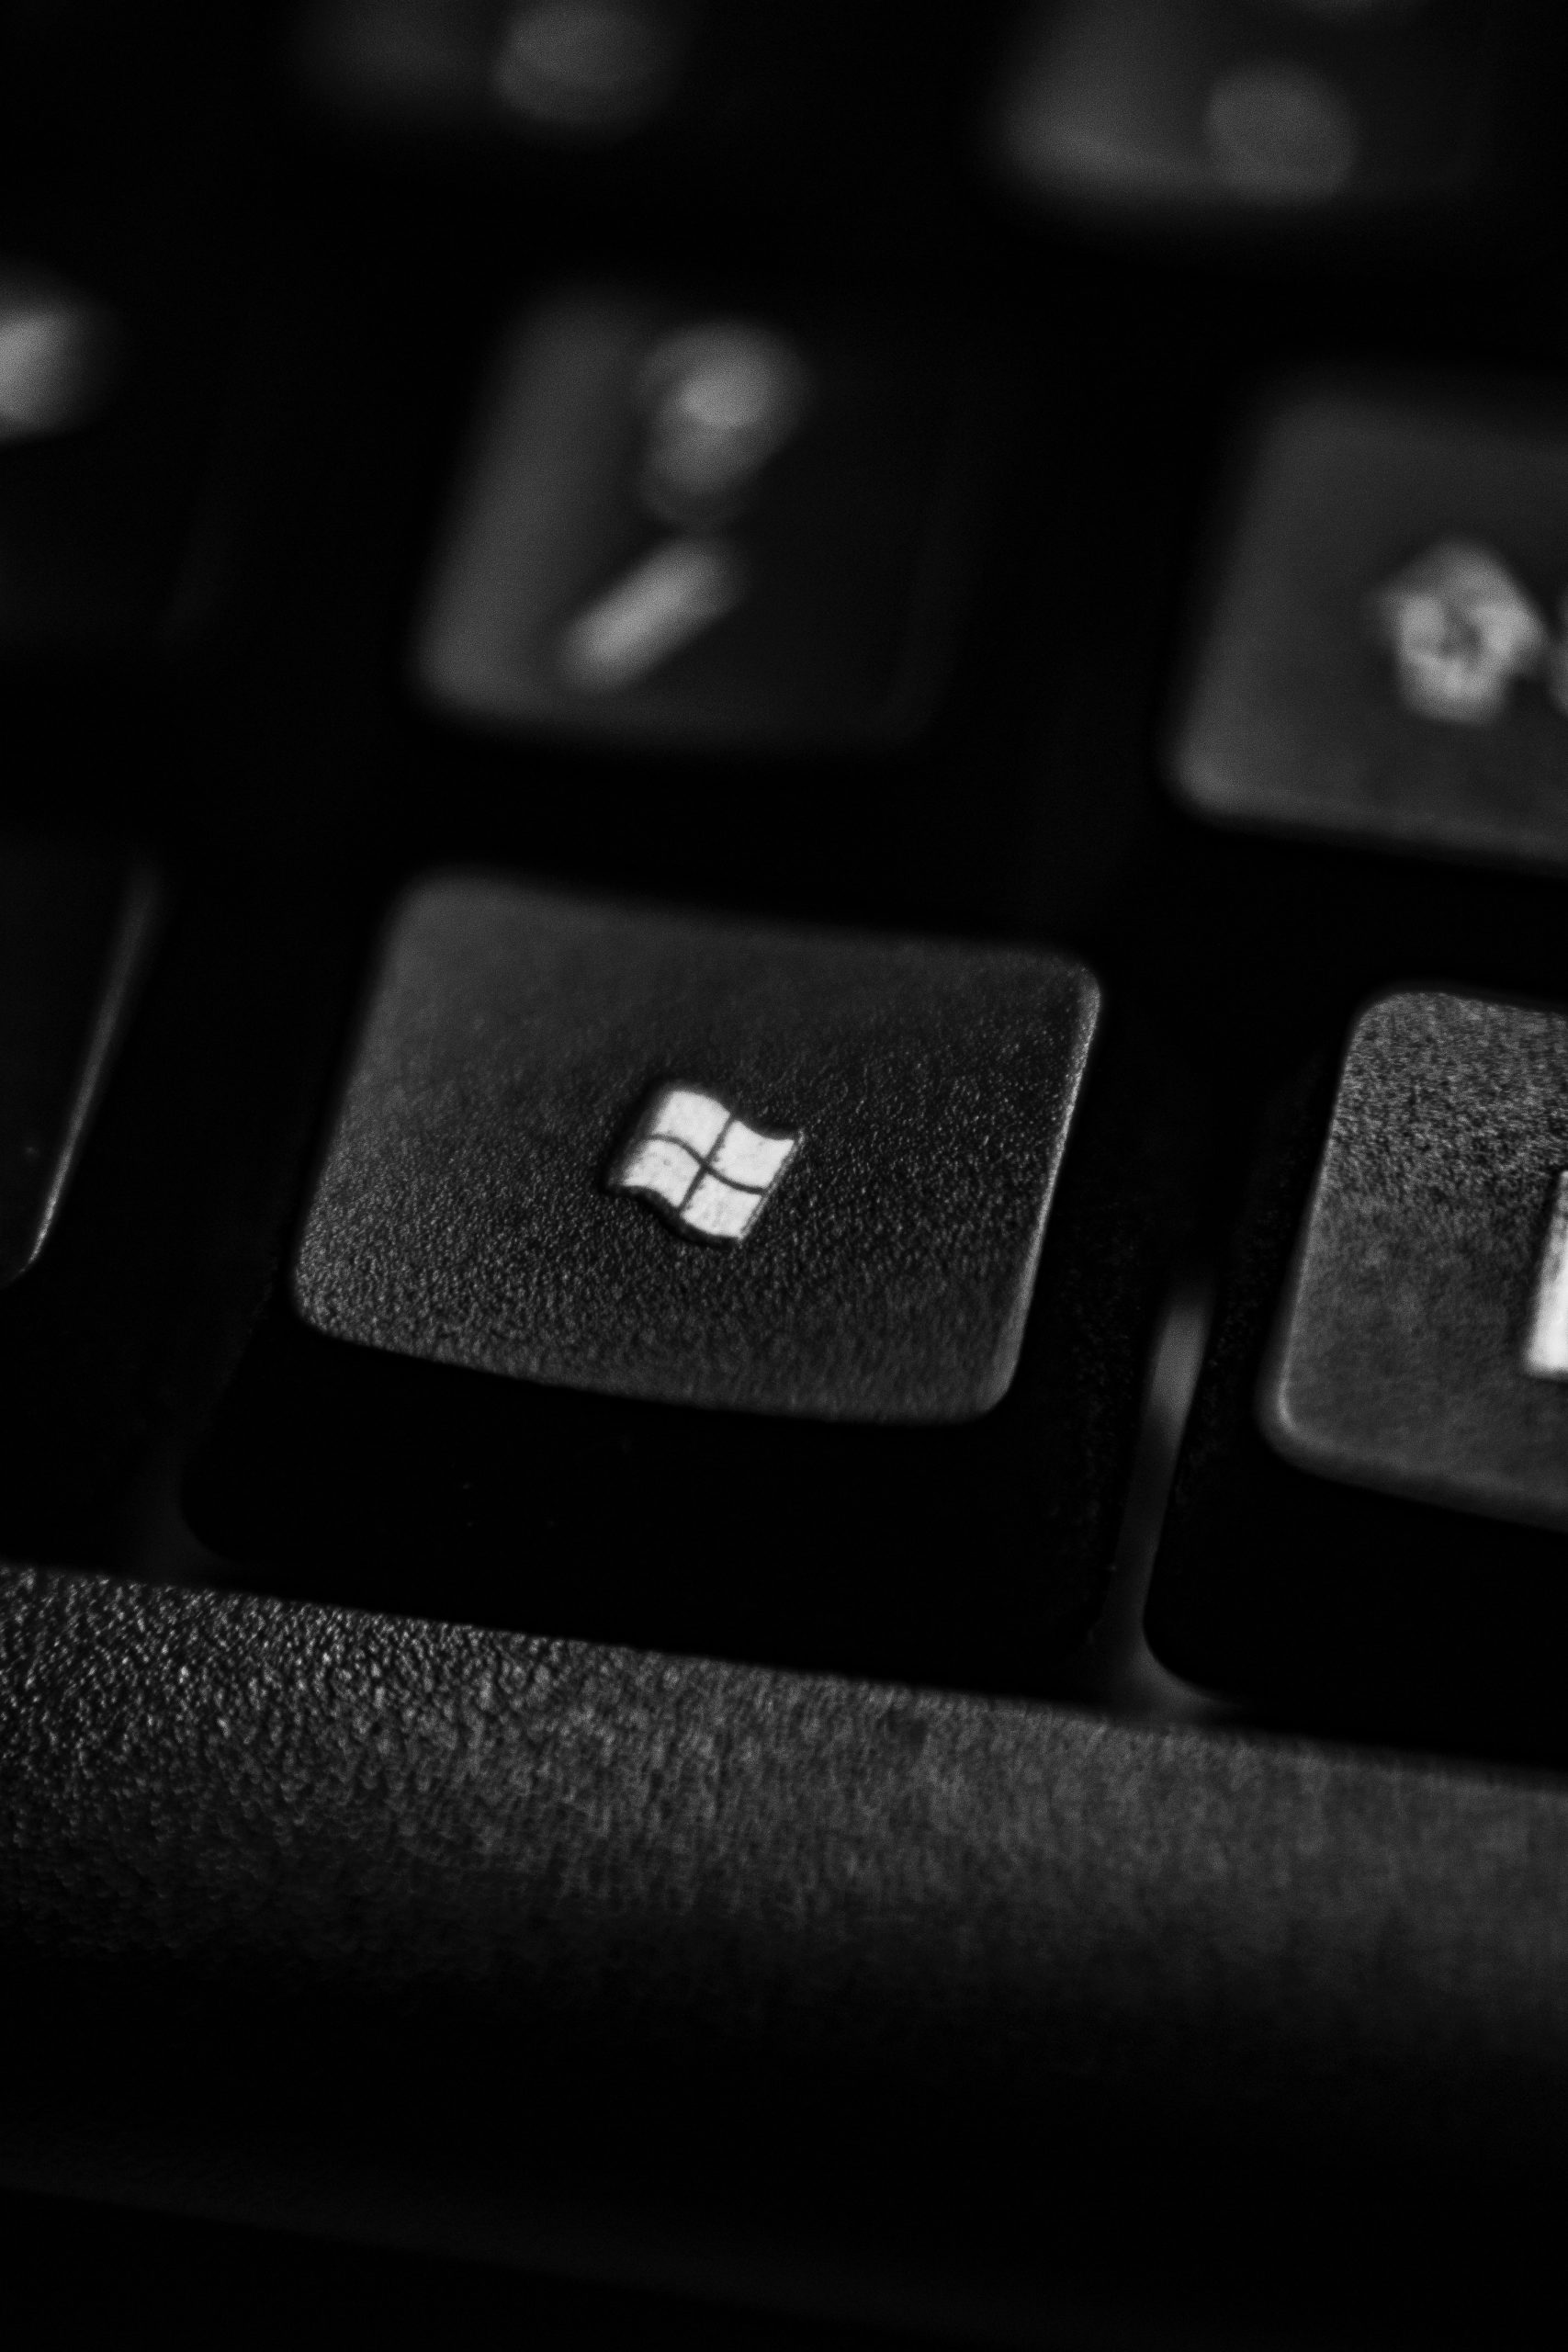 Canada, the United States and other allies, including NATO, collectively condemn China for hack of Microsoft services in early 2021